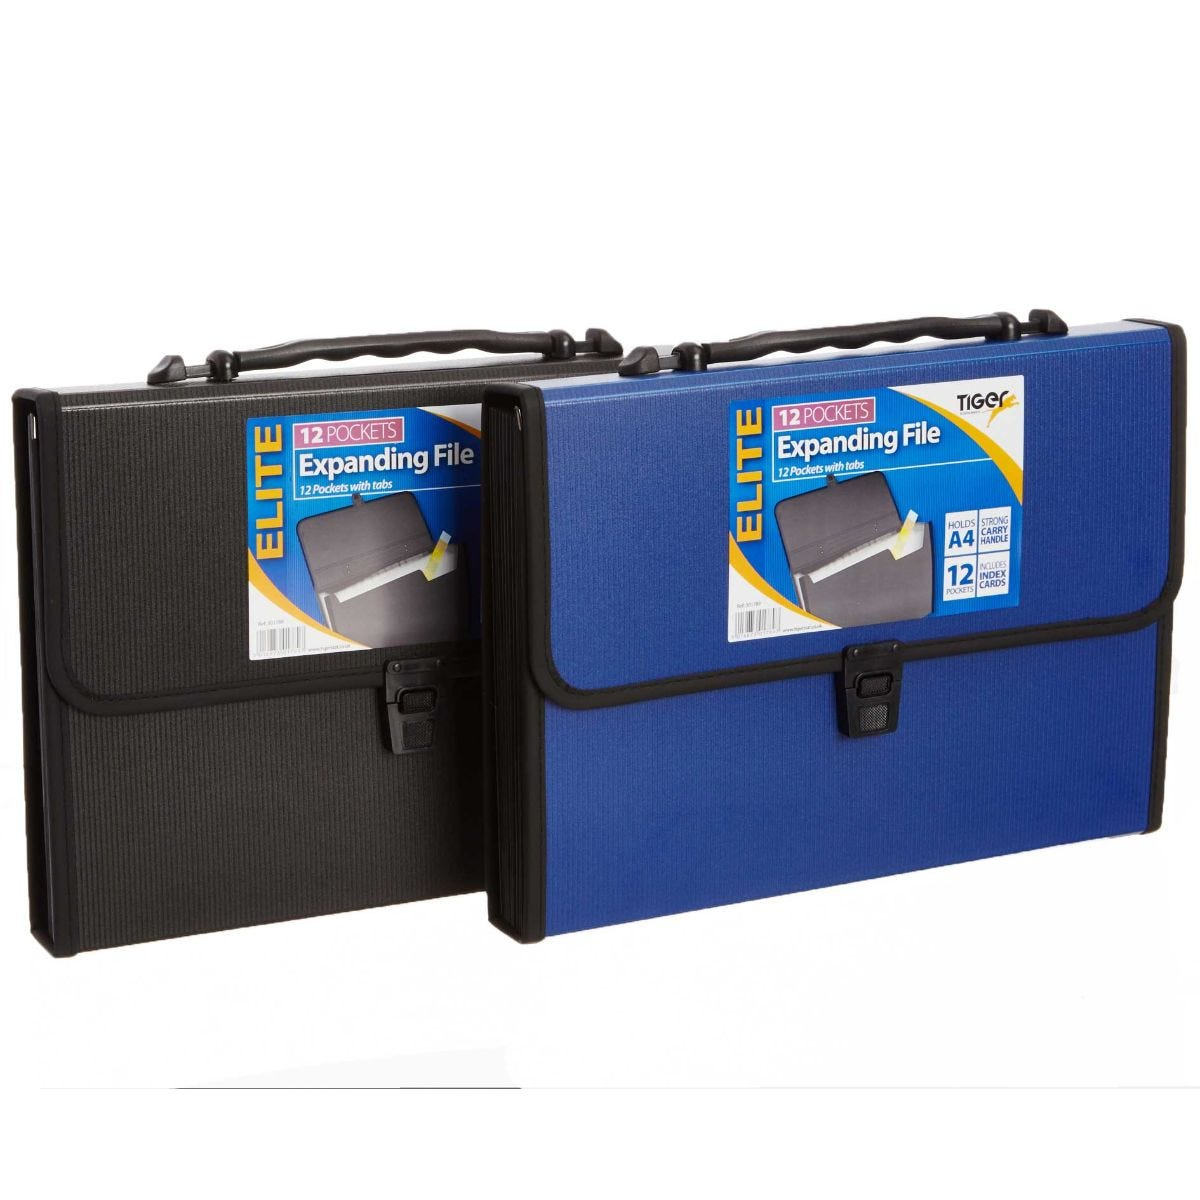 353f37088064 Tiger Elite Heavy Duty Expandable File A4 12 Pocket Assorted